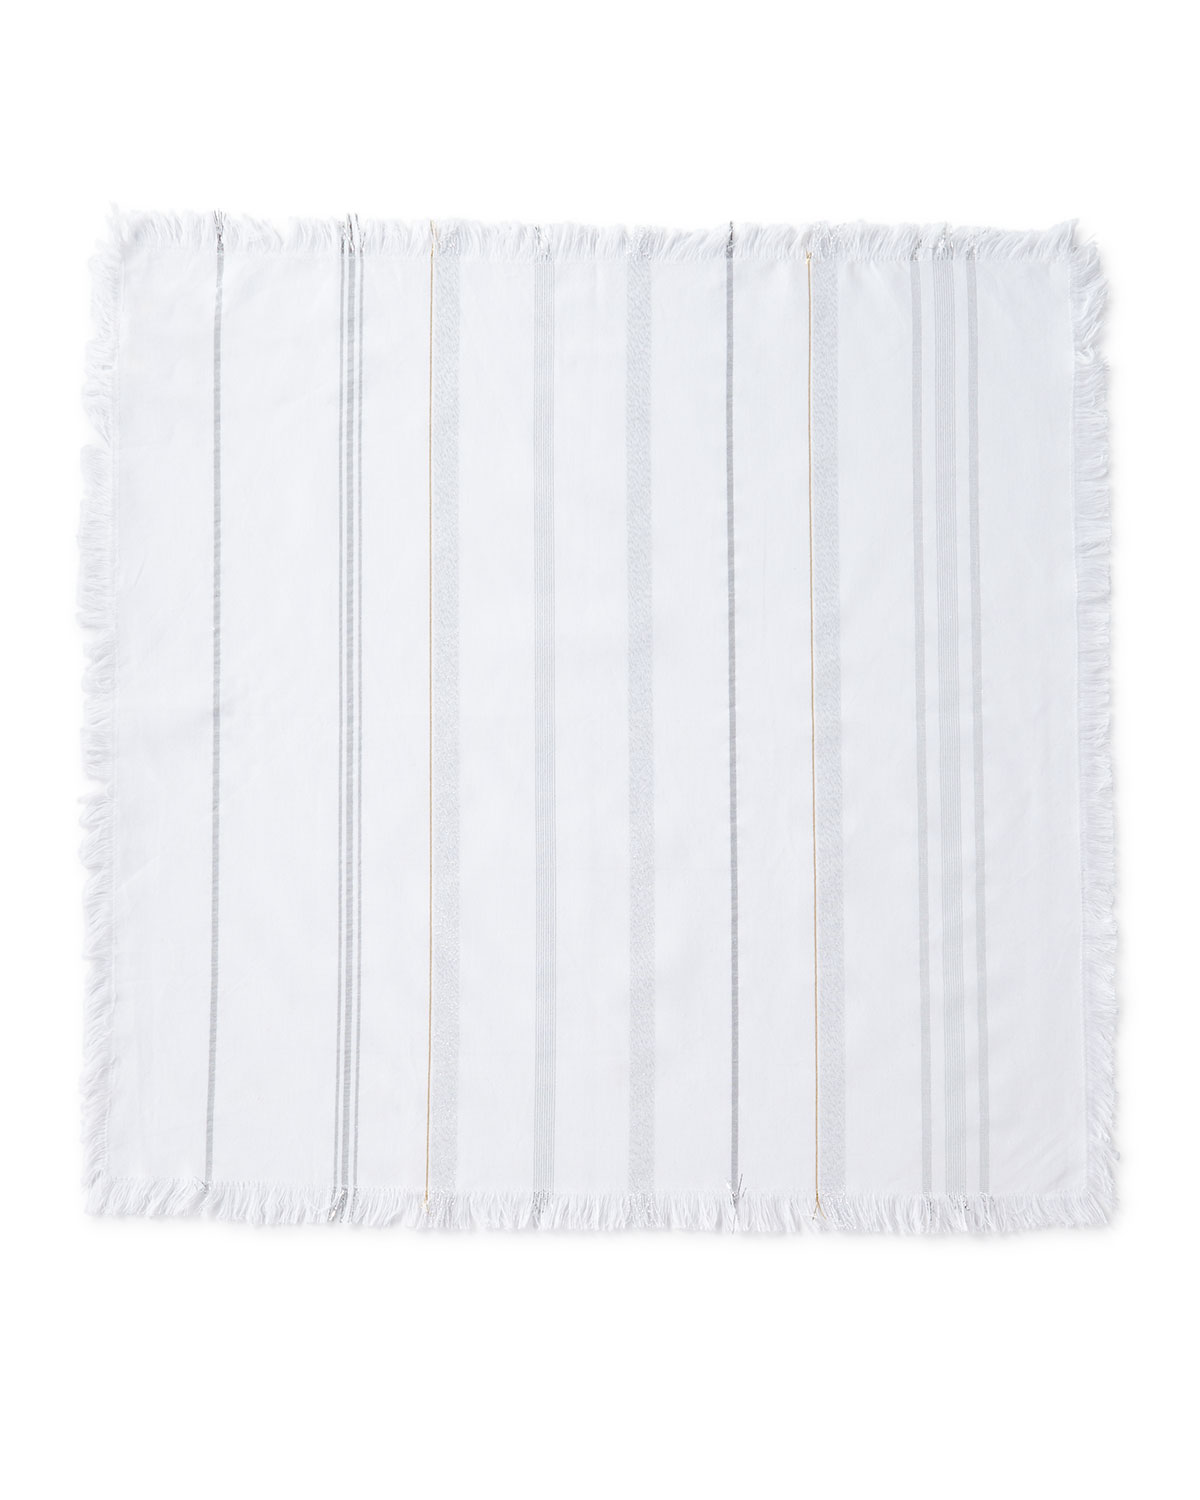 Juliska Variegated Metallic Stripe Napkin